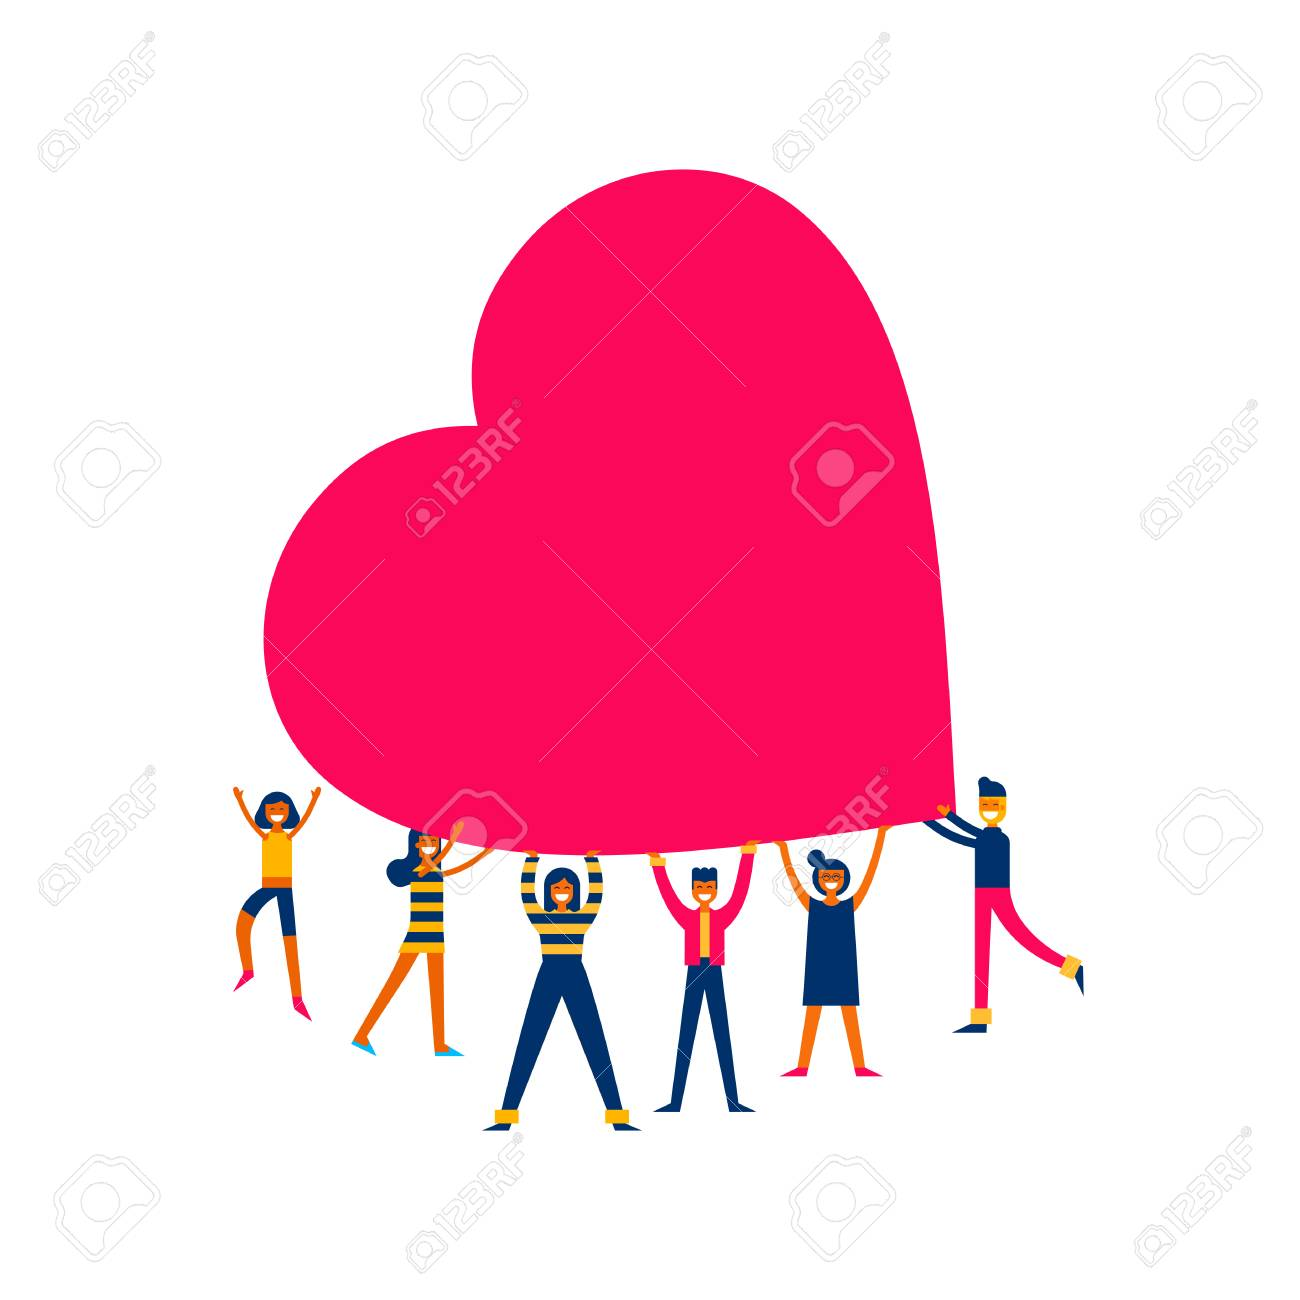 Group of people holding giant heart, love makes the change concept illustration in modern flat art style. - 93084238